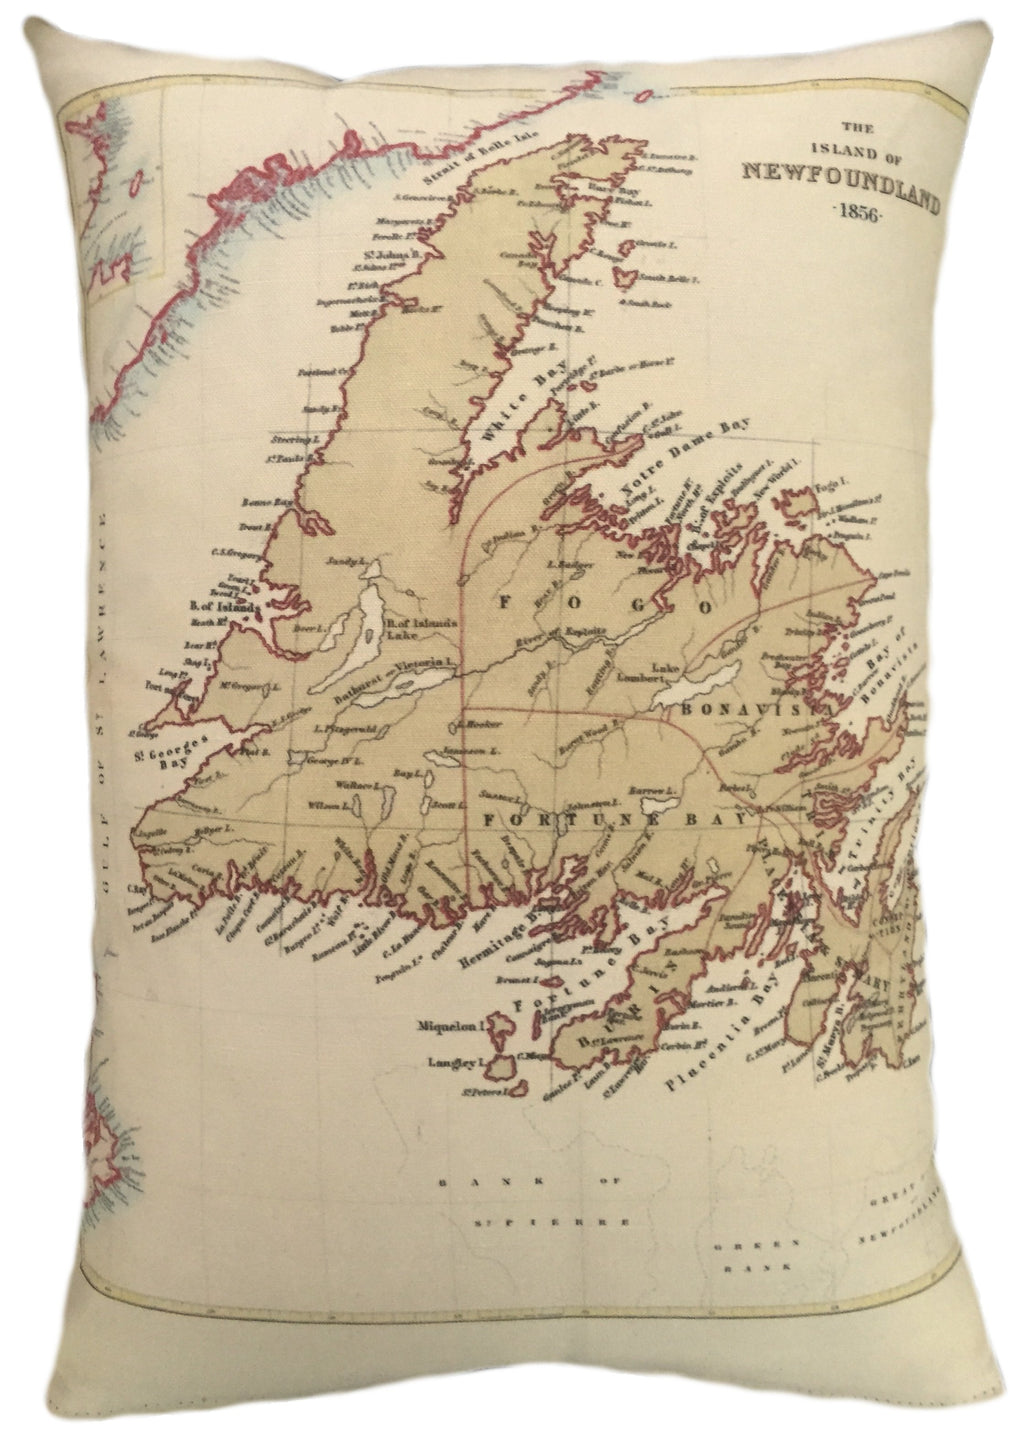 Newfoundland Map Pillow - Vintage Map Co.